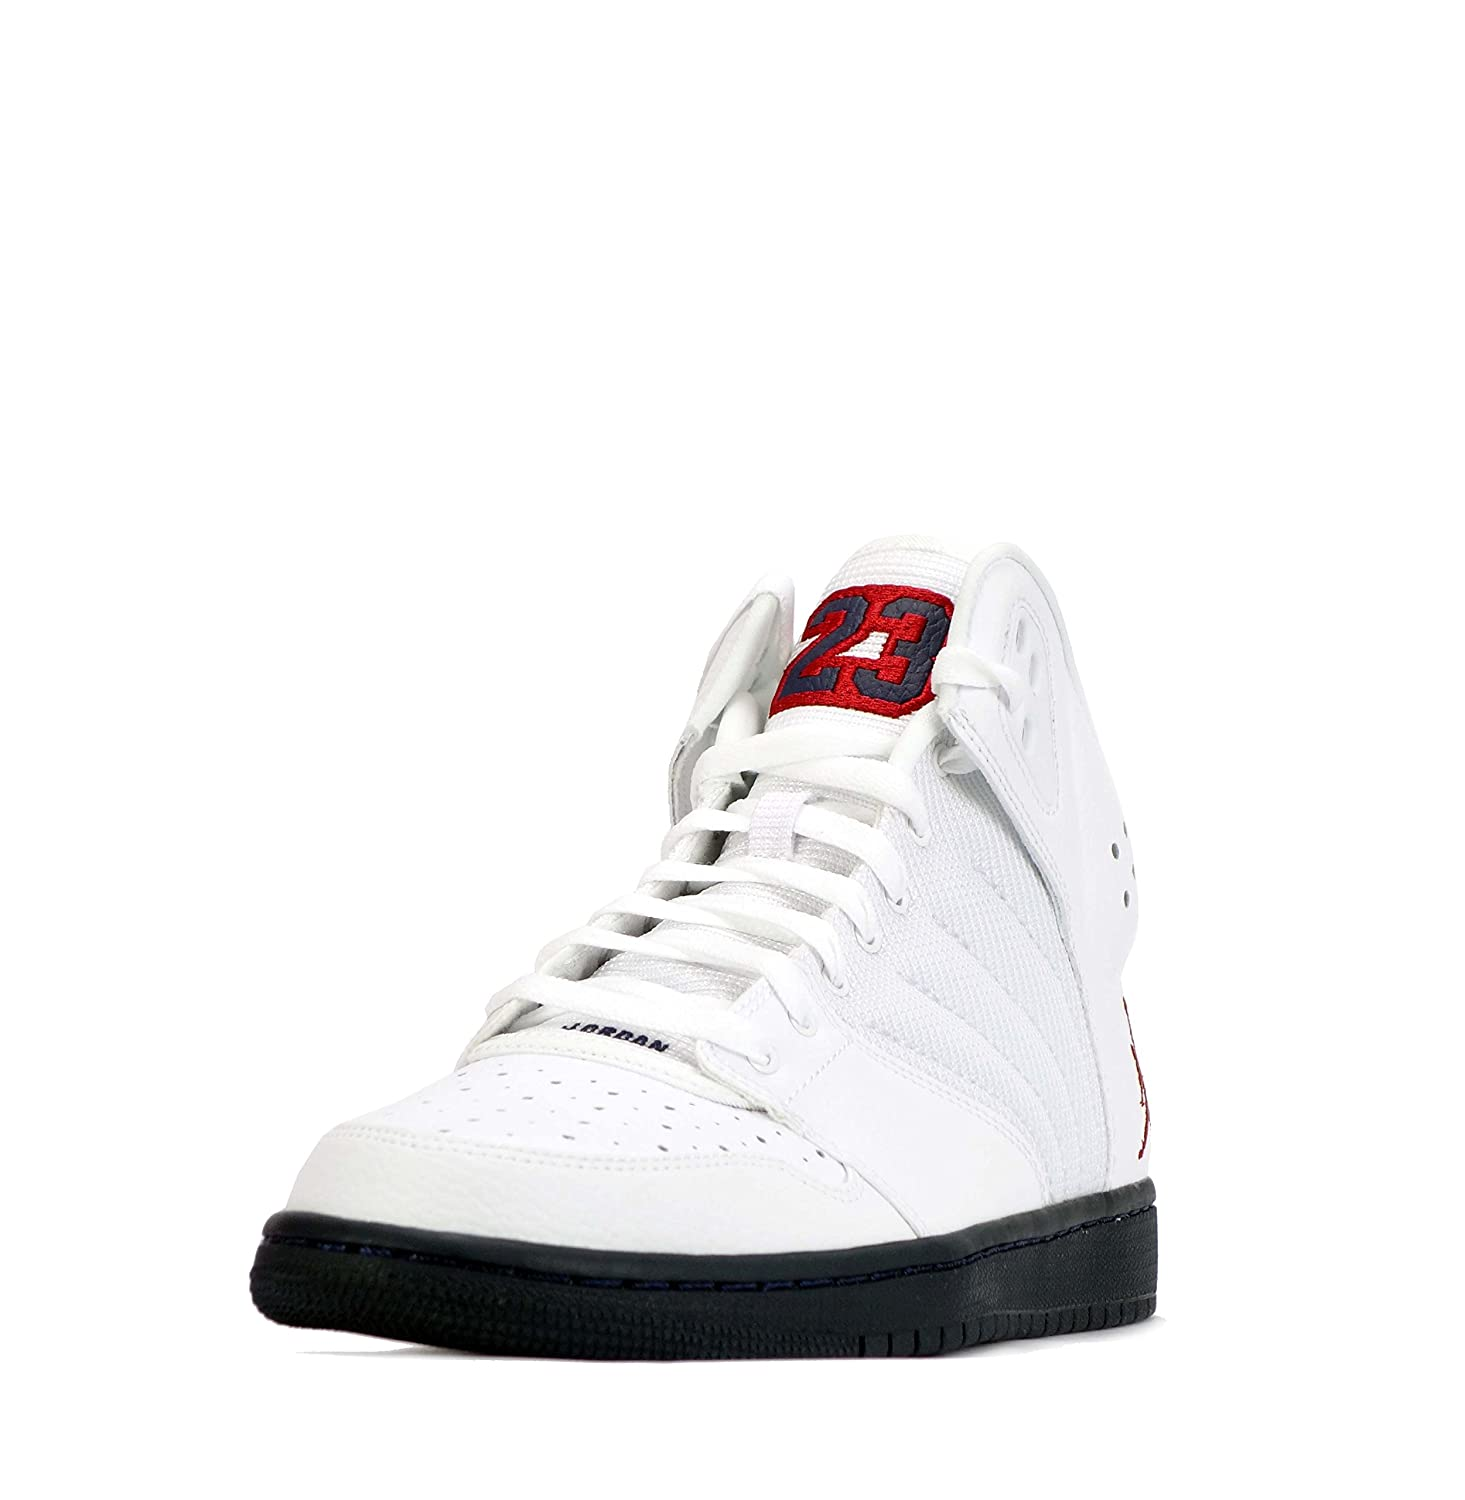 huge discount 207f3 5267a Nike Air Jordan 1 Flight 4 PREM Mens Hi Top Basketball Trainers 838818  Sneakers Shoes (US 9, White Gym red Midnight Navy 164)  Buy Online at Low  Prices in ...